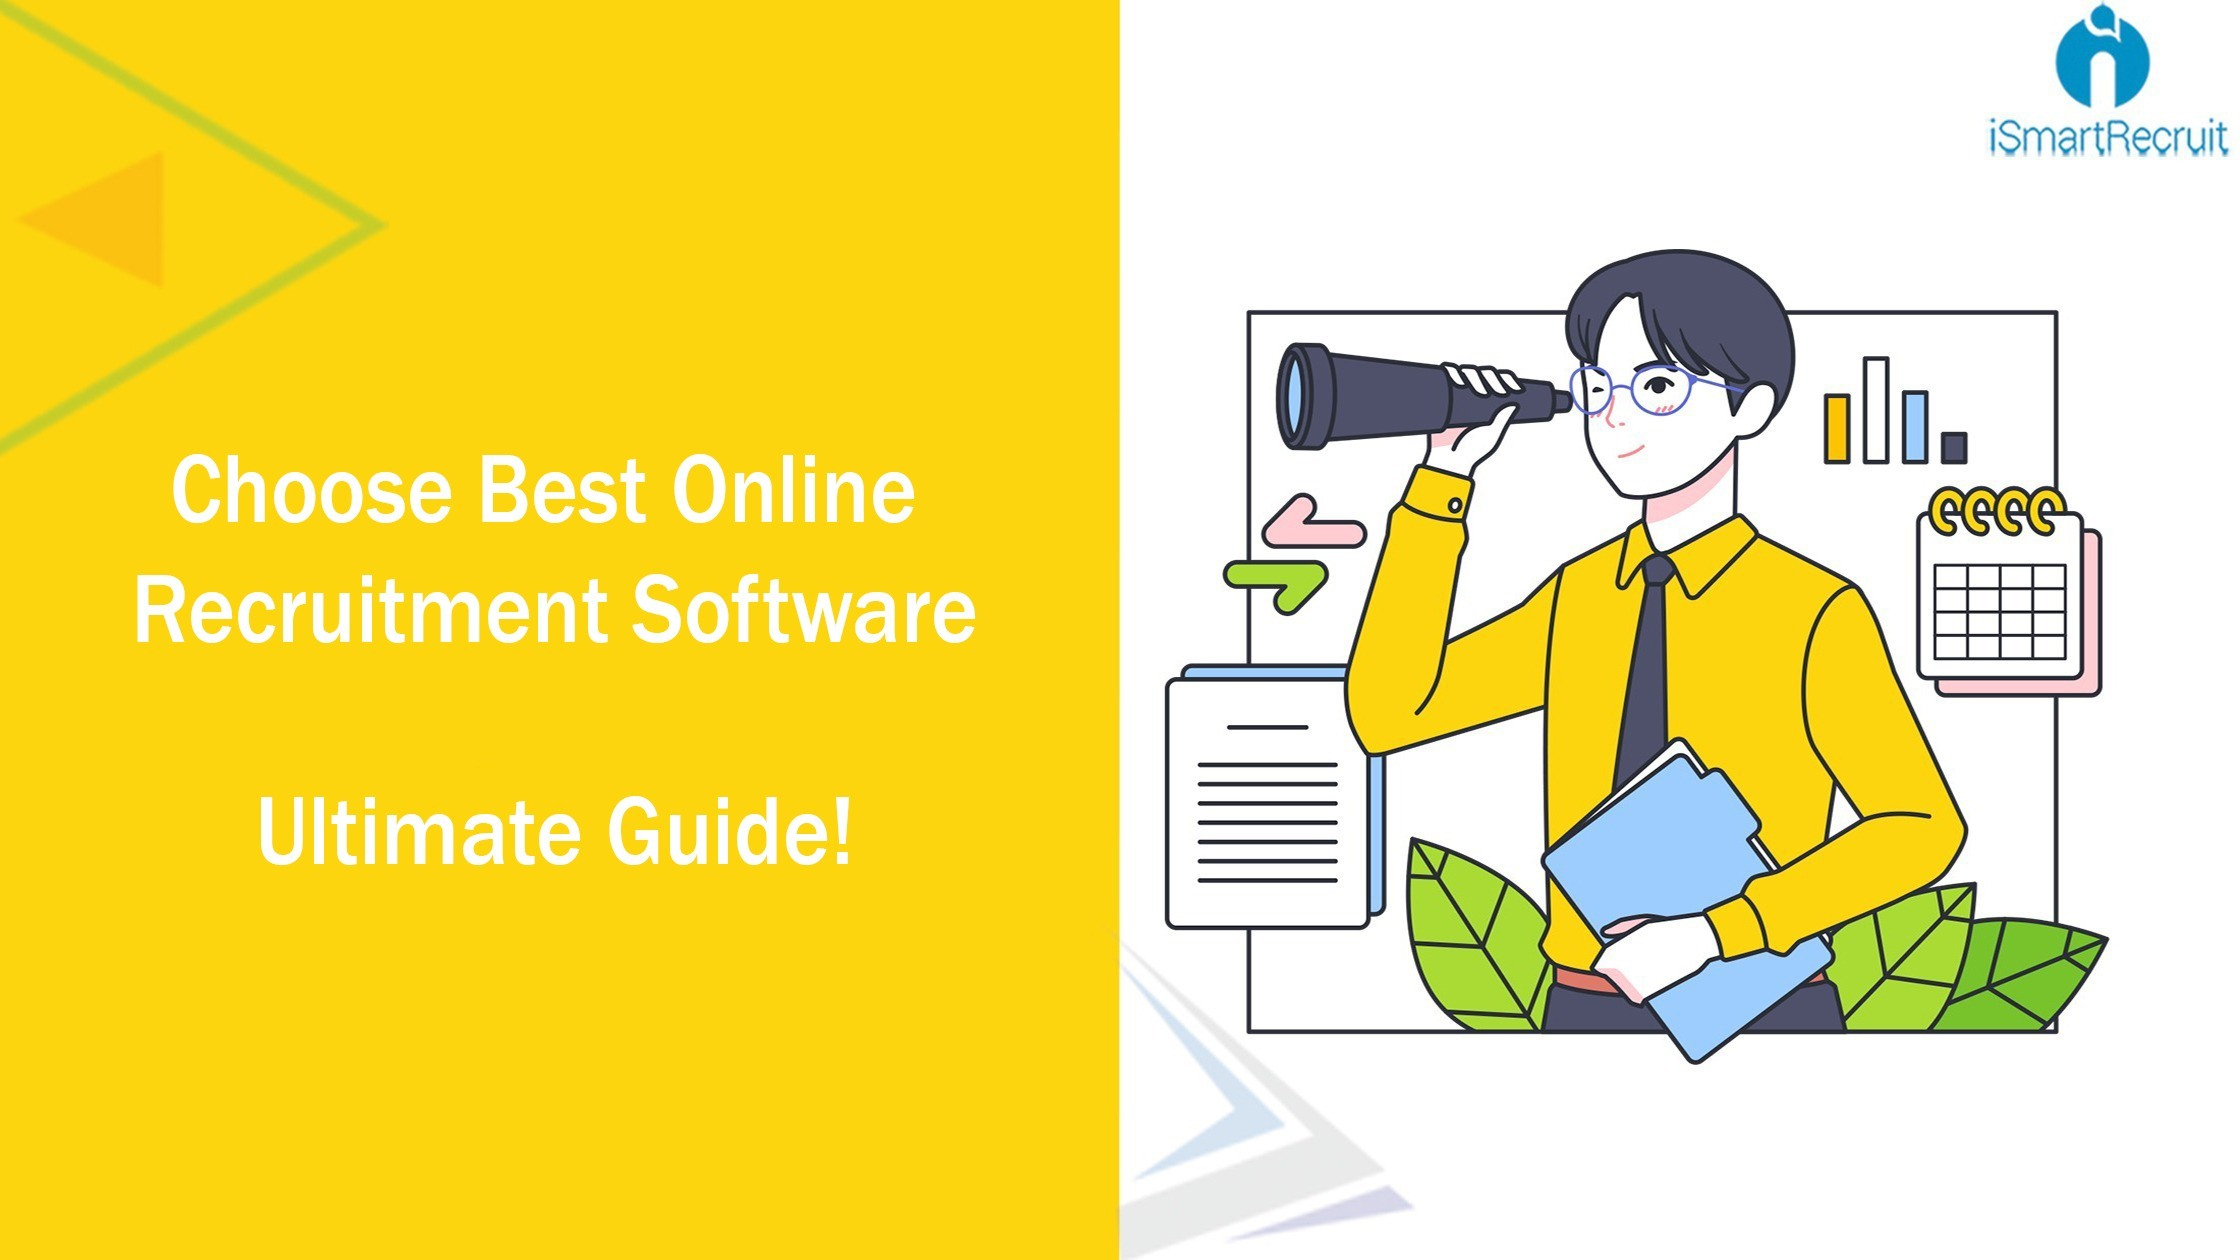 Choose Best Online Recruitment Software: Ultimate Guide!